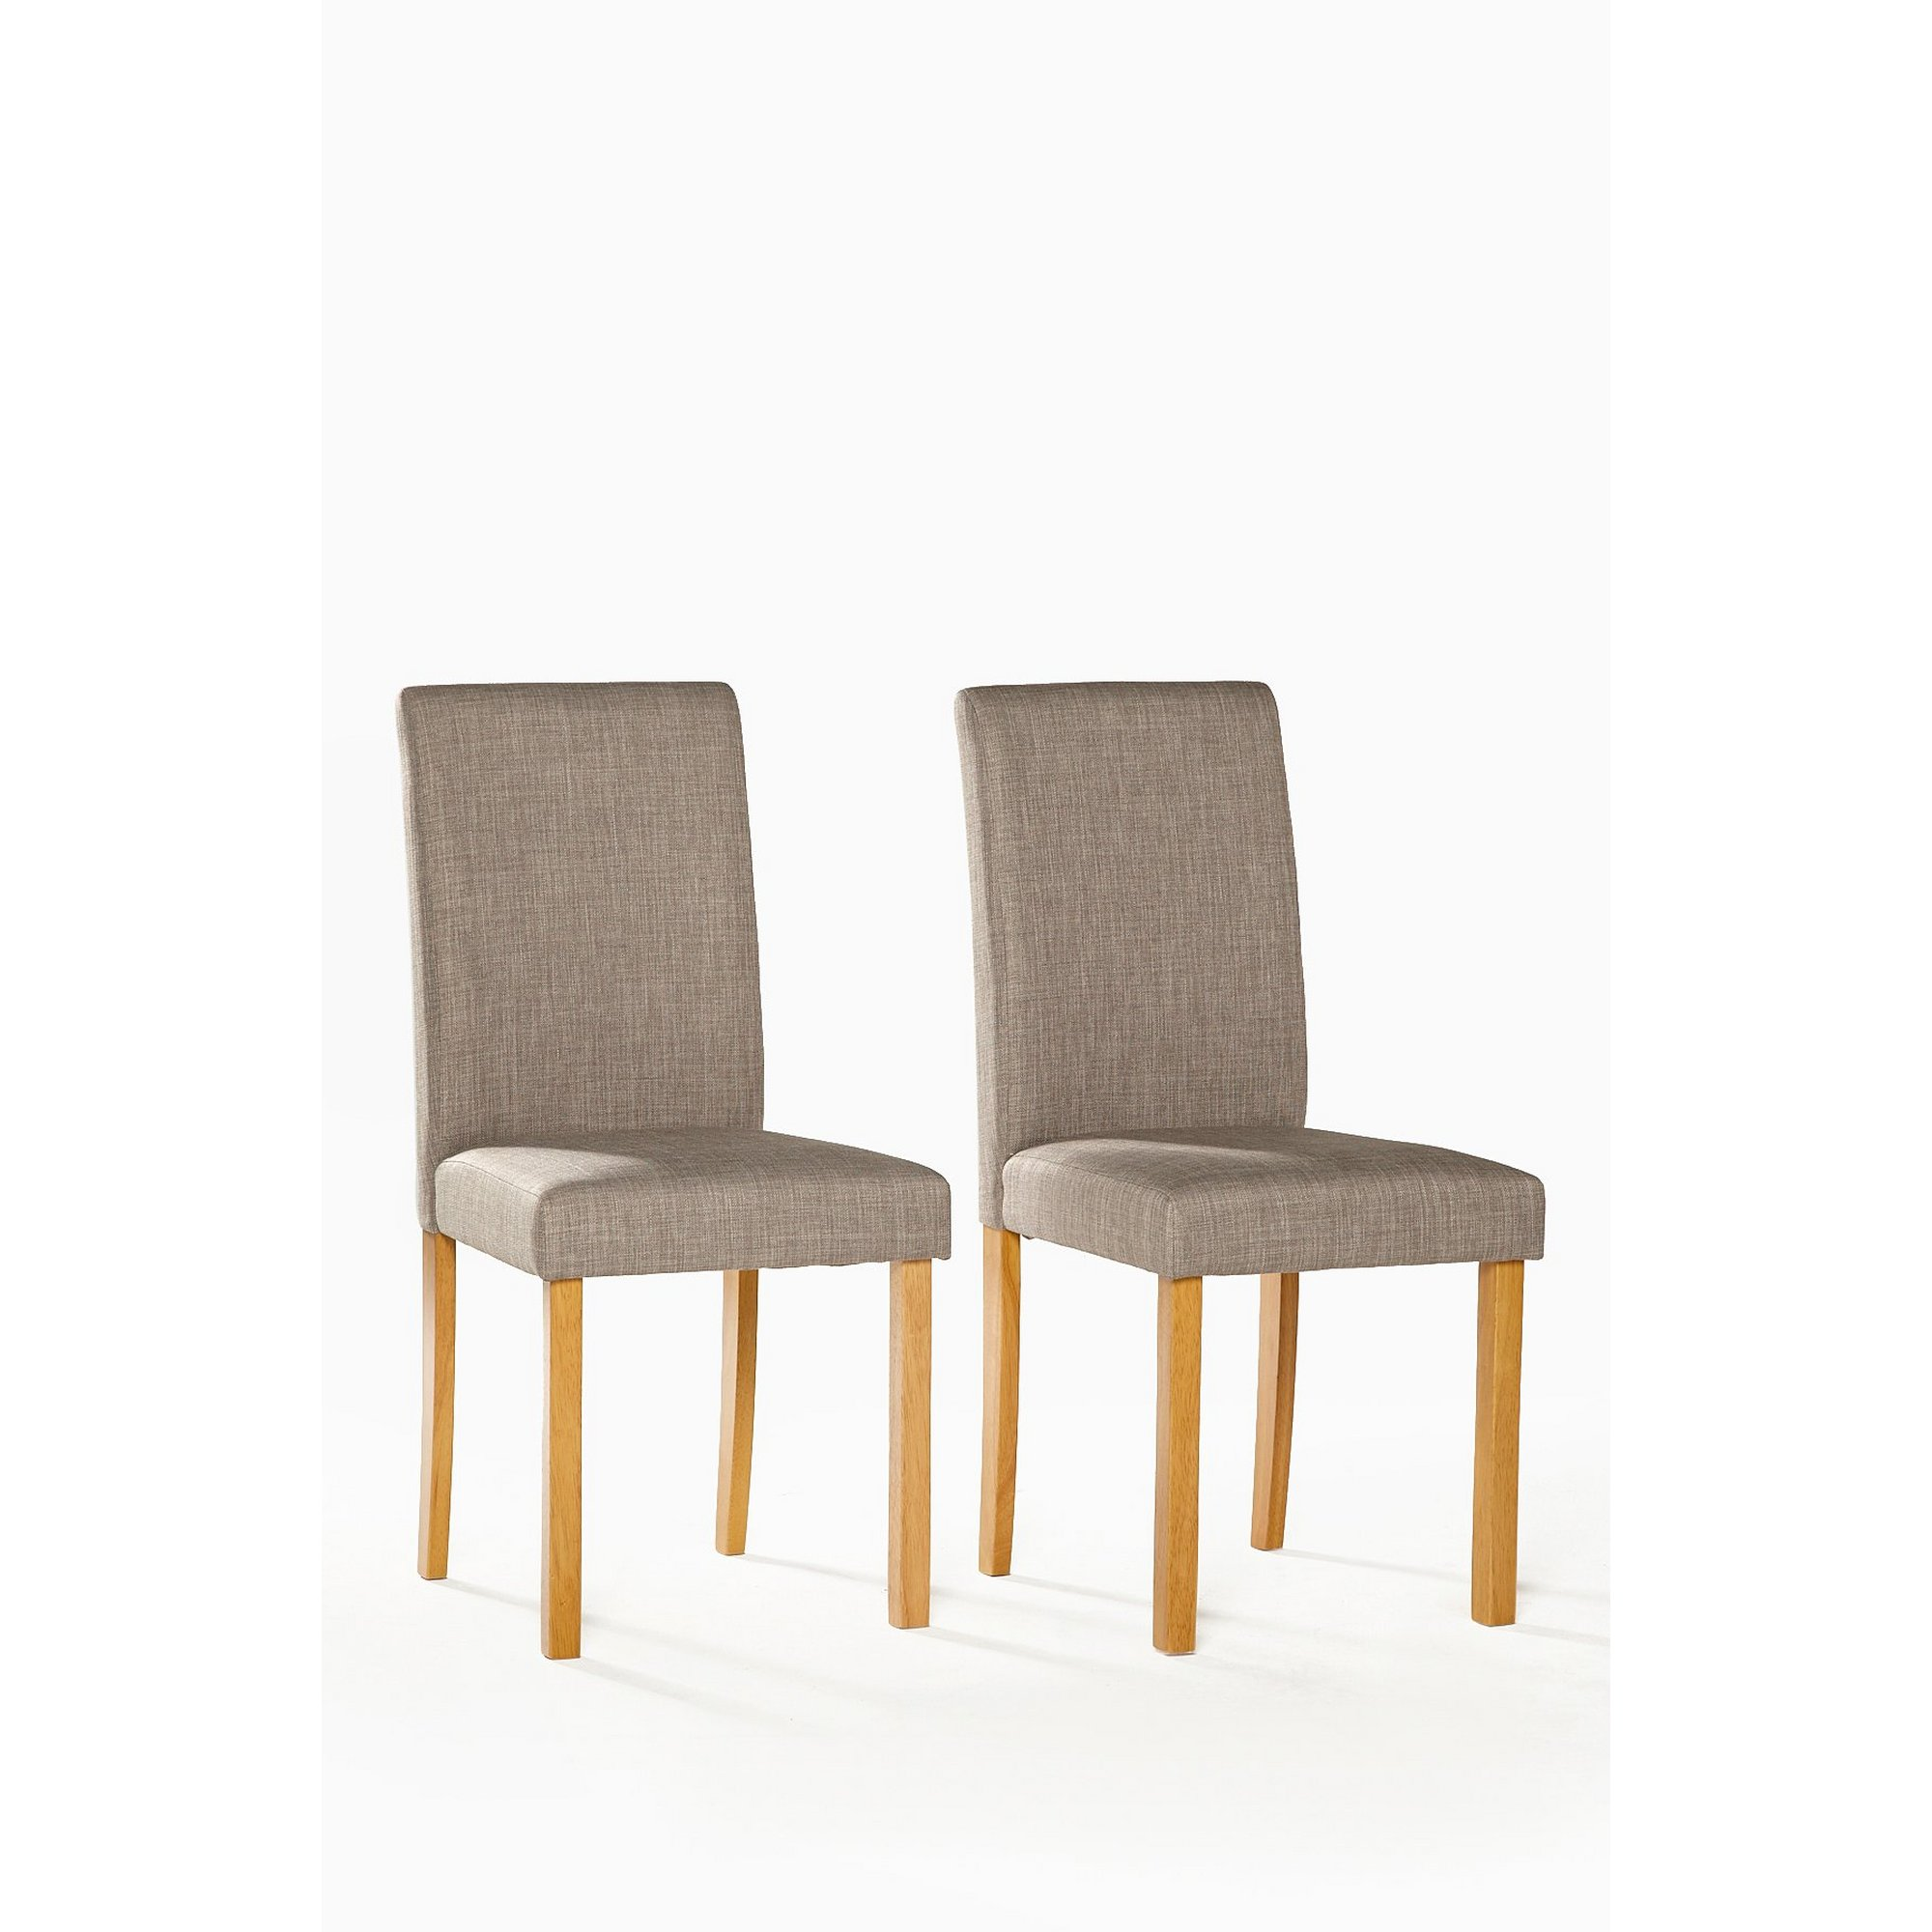 Image of Pair of Kingston Chairs - Fabric